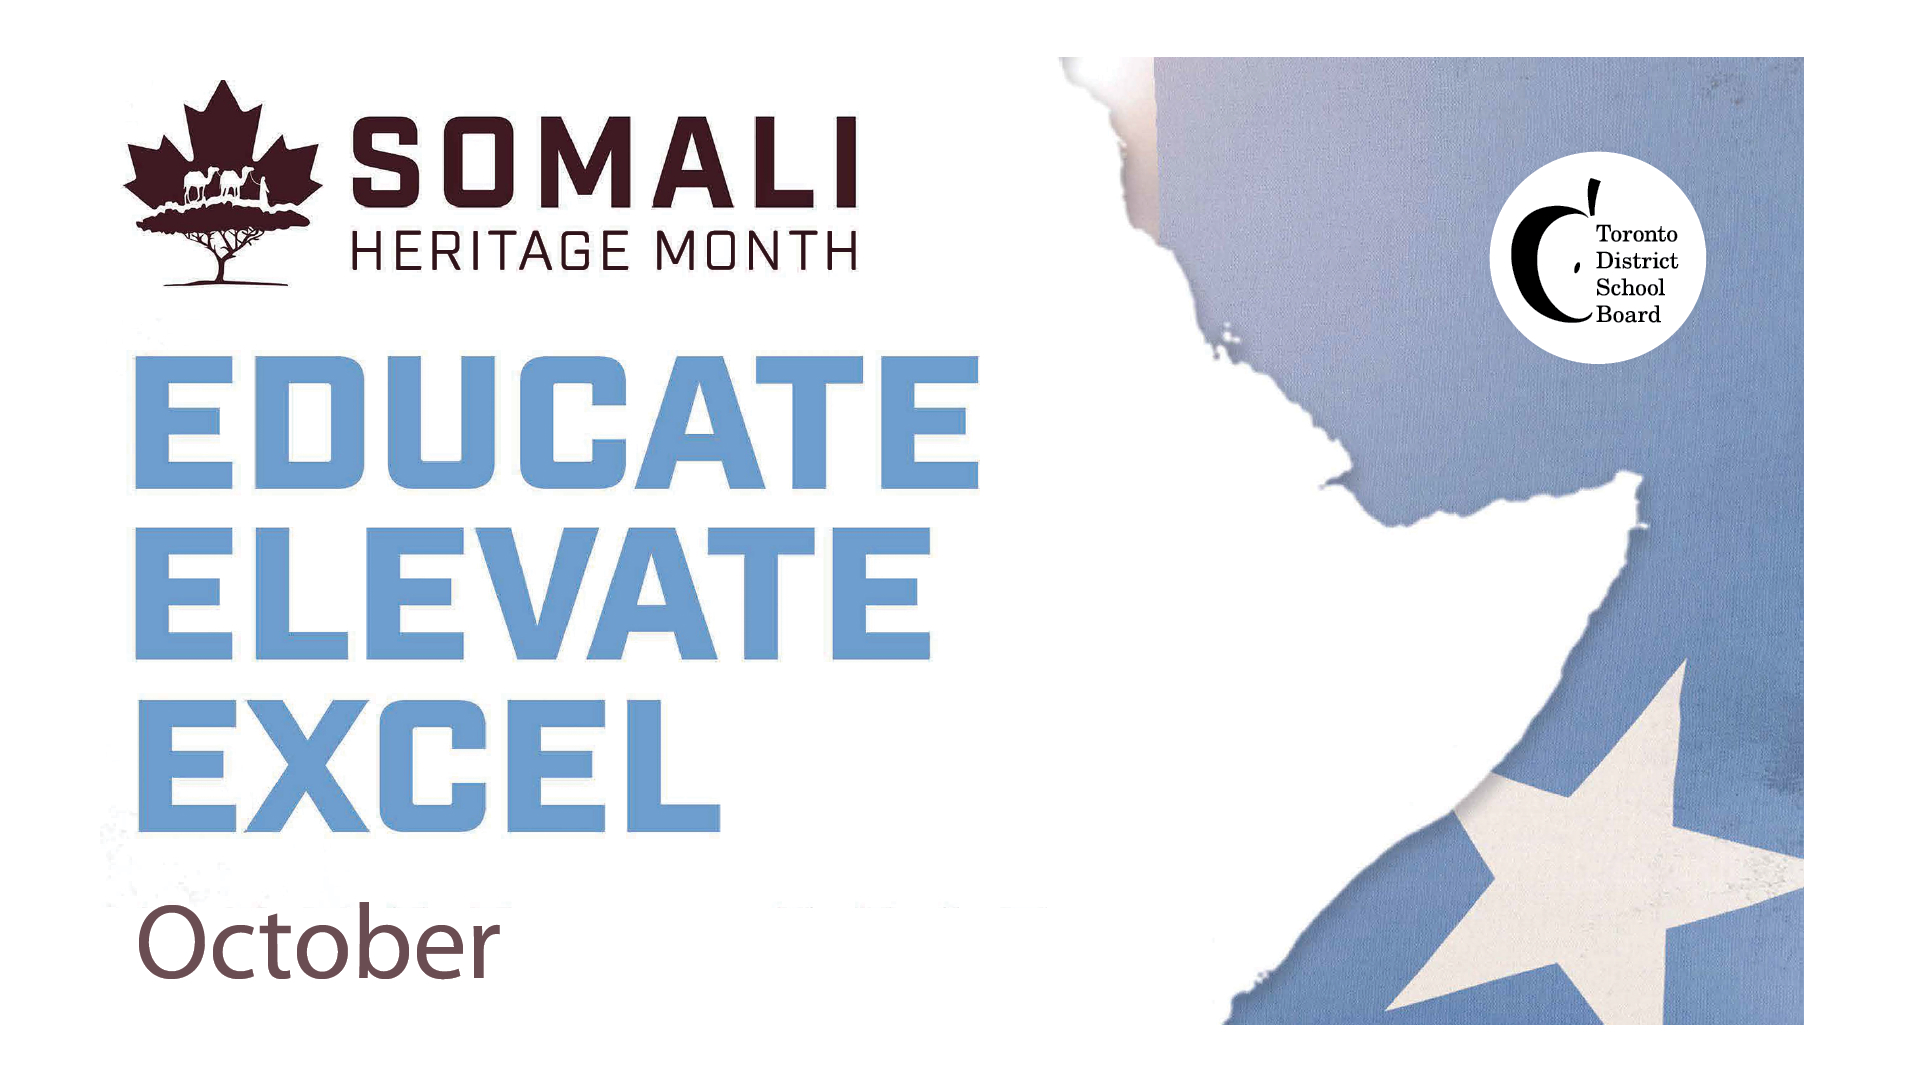 a poster recognizing Somali Heritage Month in the TDSB with the theme name Educate, Elevate, Excel